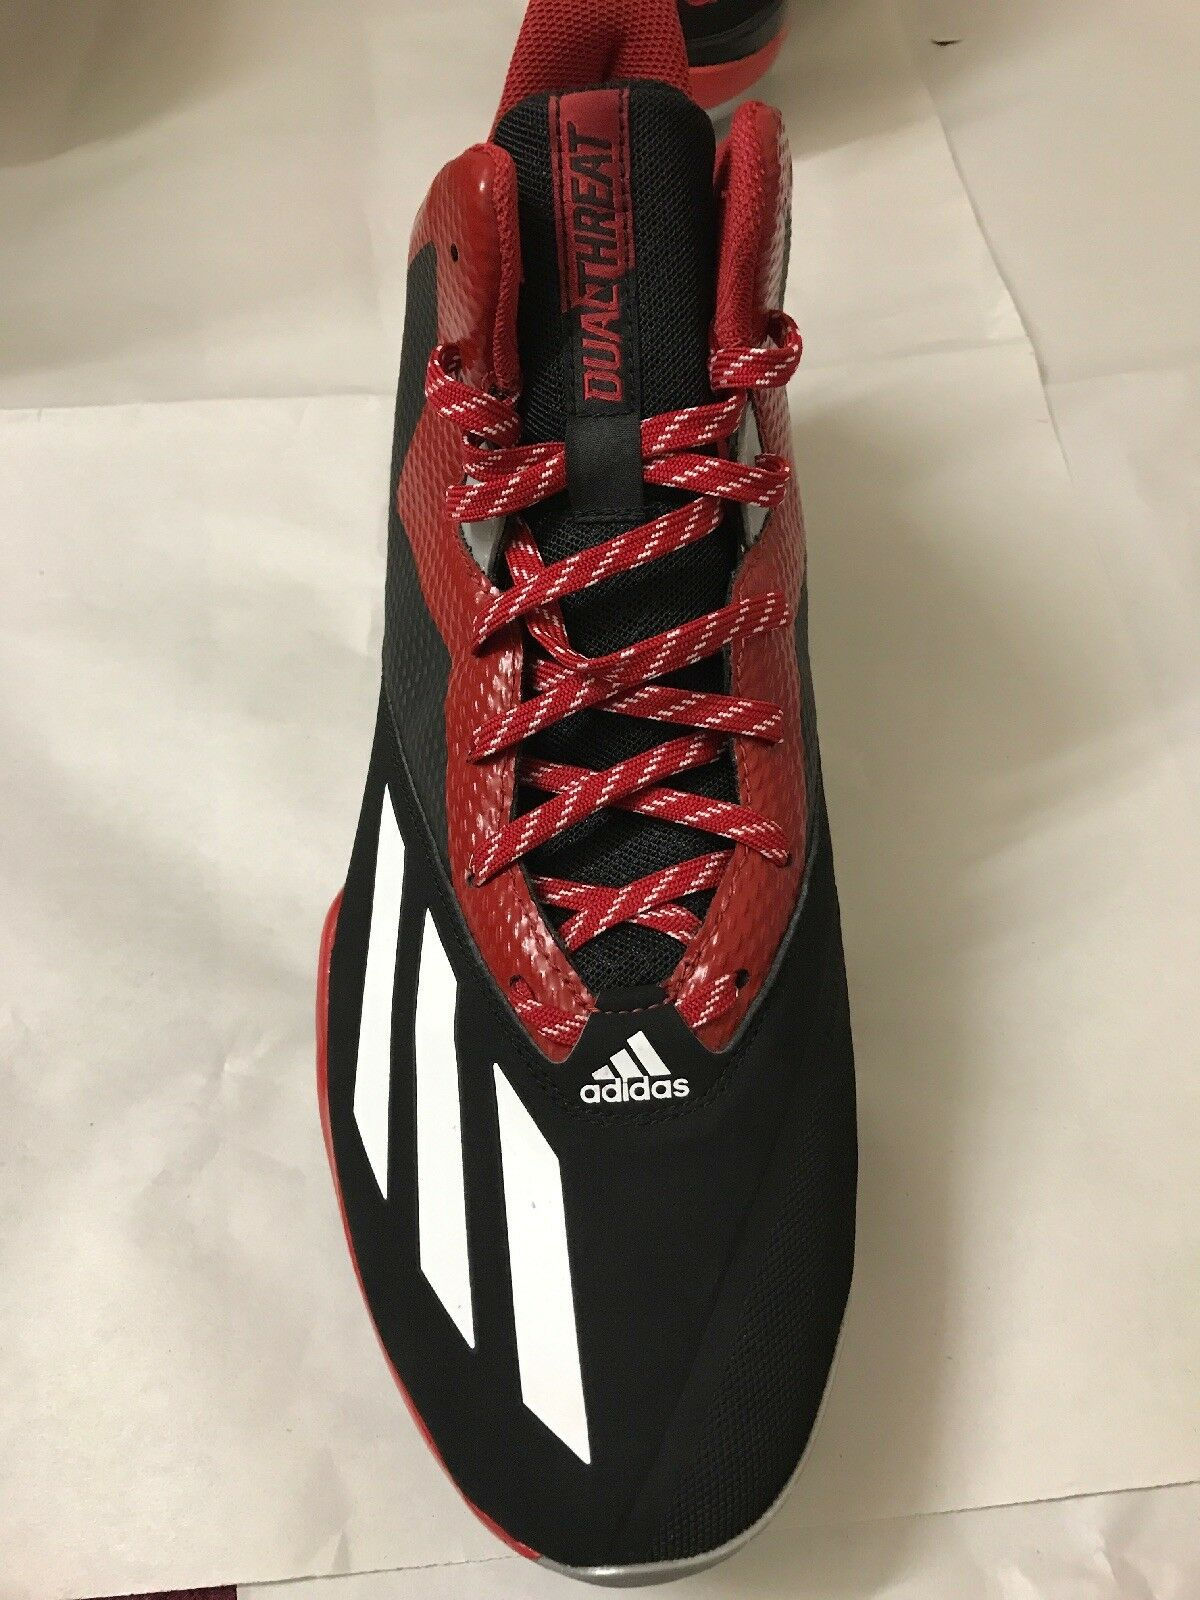 dc9ce5526151 New Adidas Men s Dual Threat Size US12 Baseball shoes